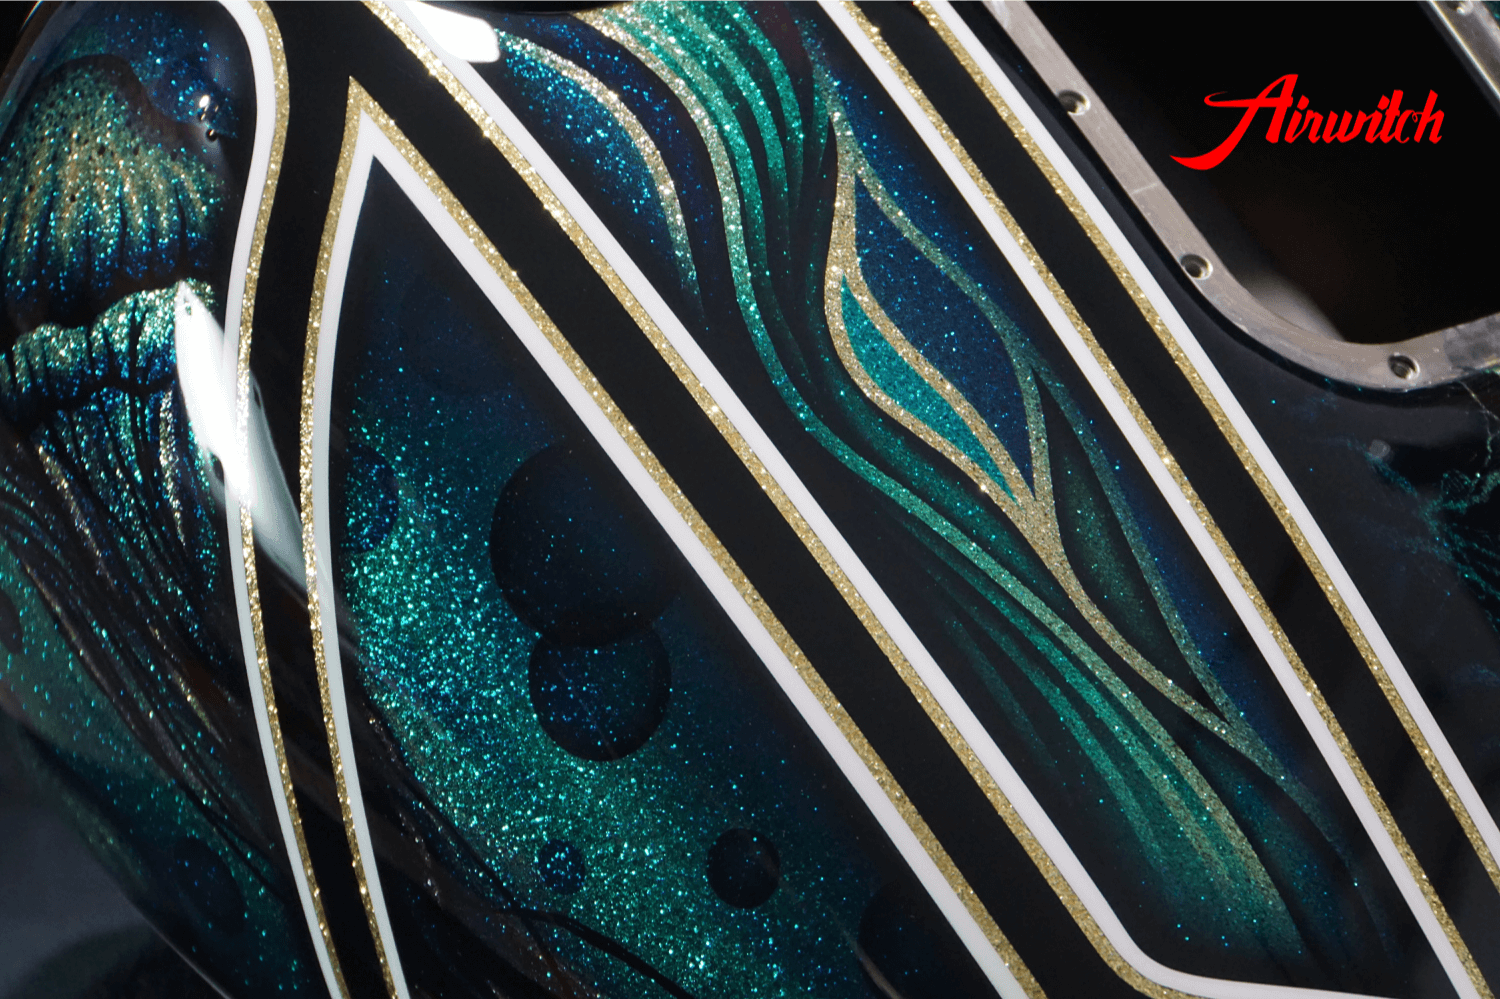 Custom Paint Harley Davidson Softail Metalflake Lackierung with bubbles jellyfish blue turquoise gold black